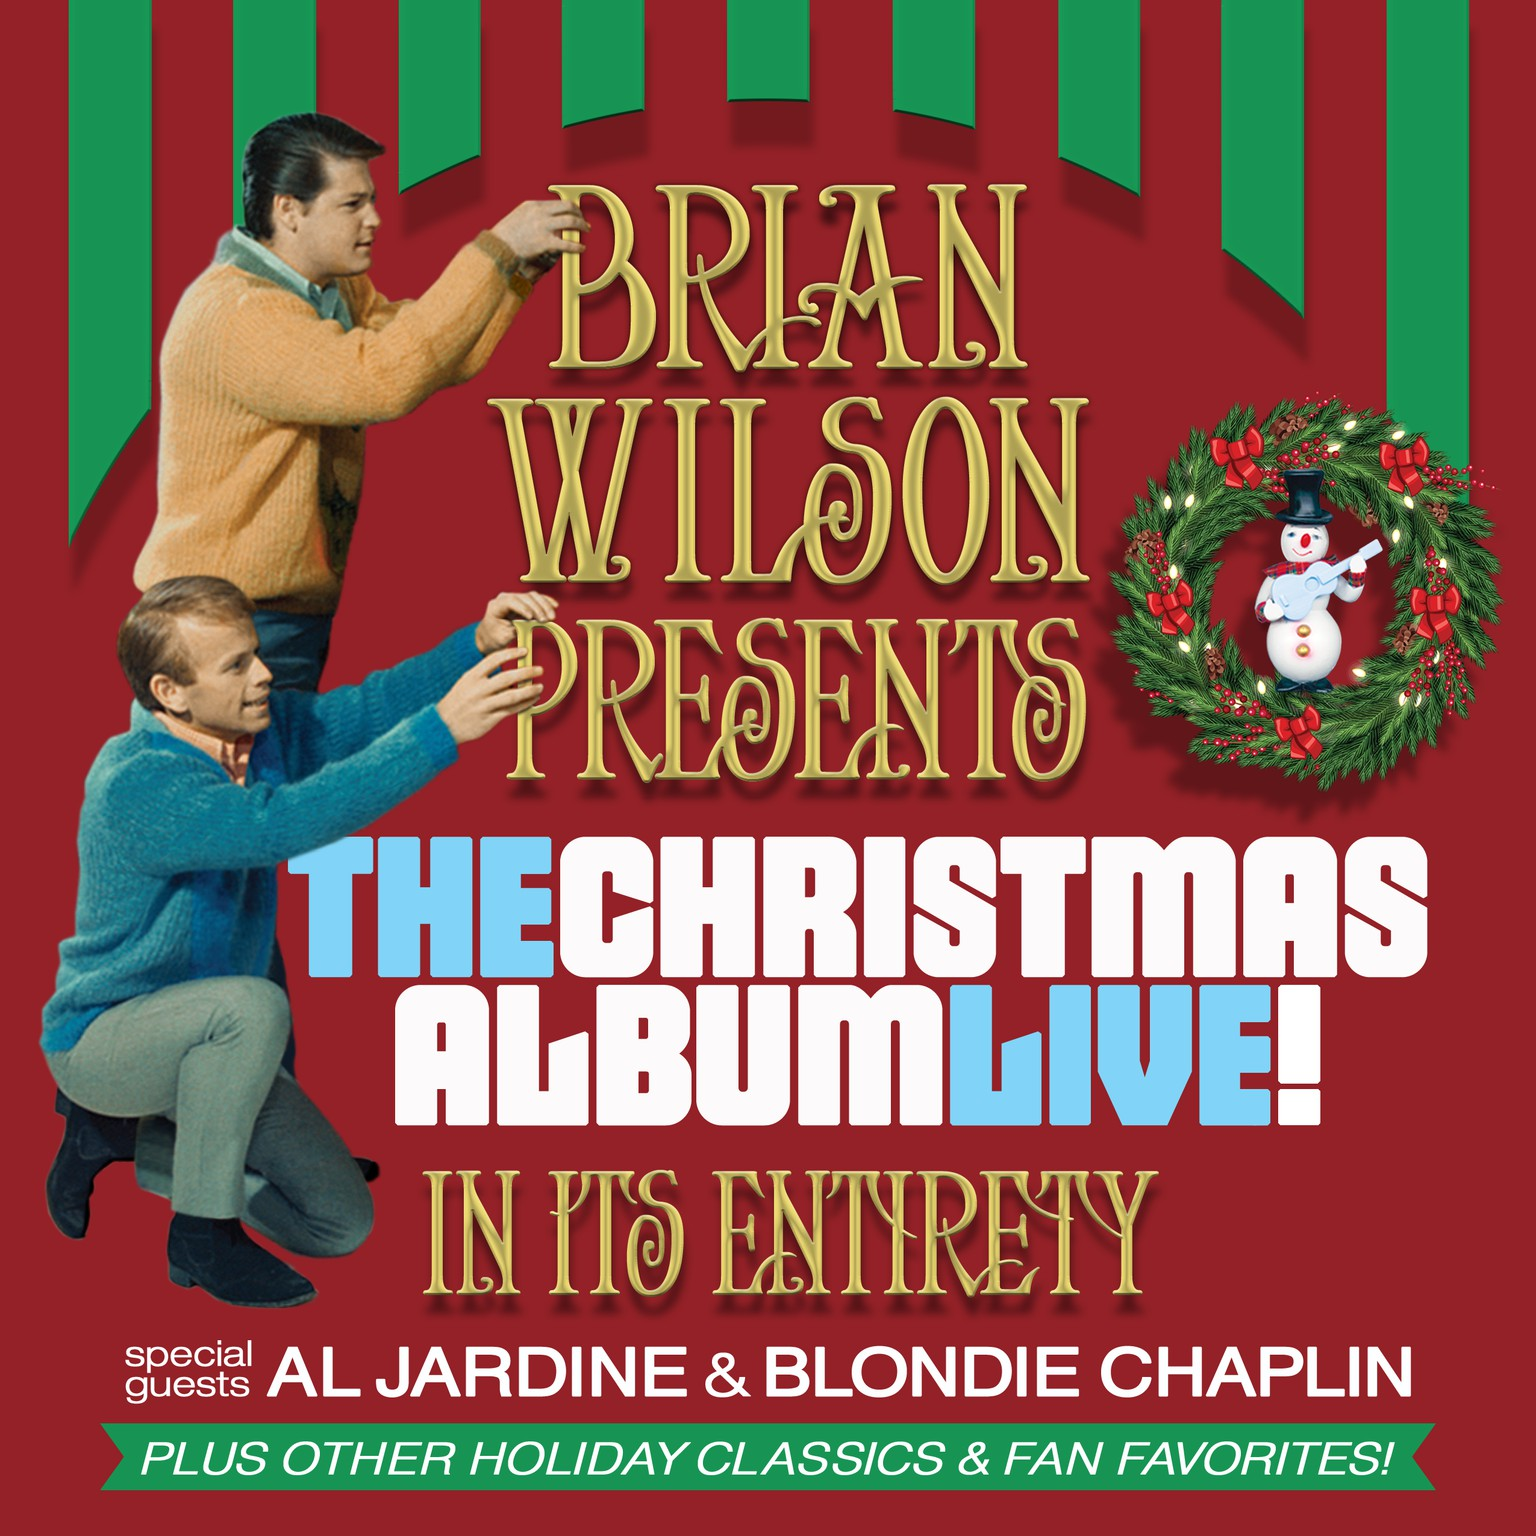 Image for BRIAN WILSON presents THE CHRISTMAS ALBUM LIVE with special guests AL JARDINE & BLONDIE CHAPLIN